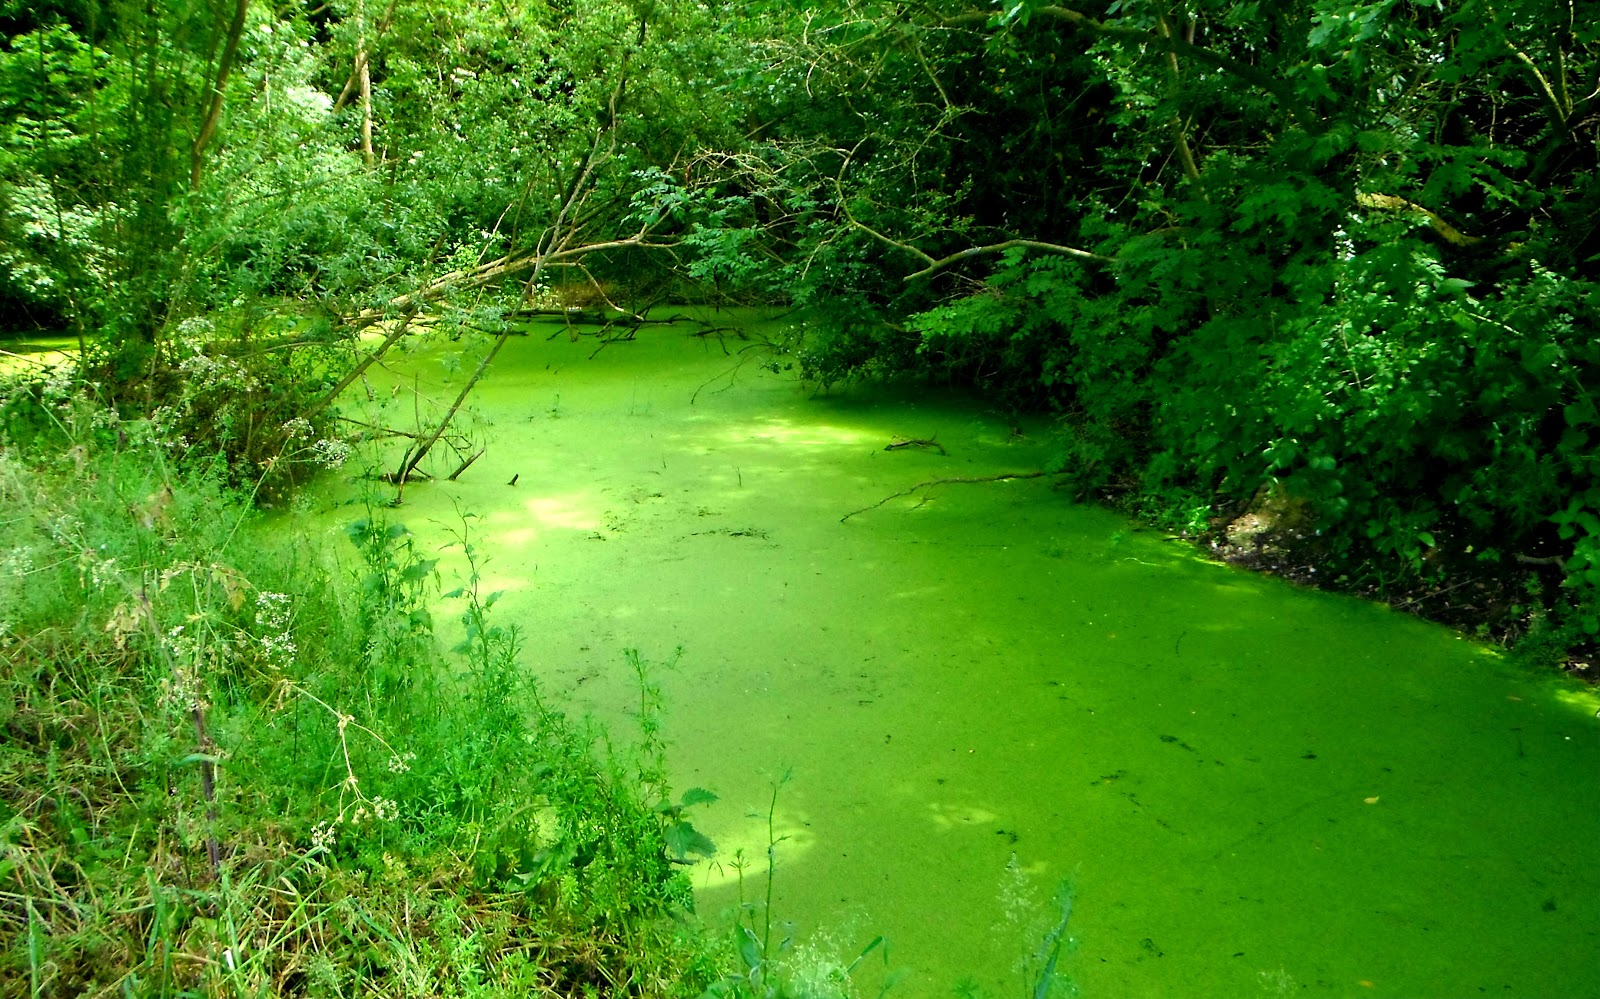 Algae growth in pond